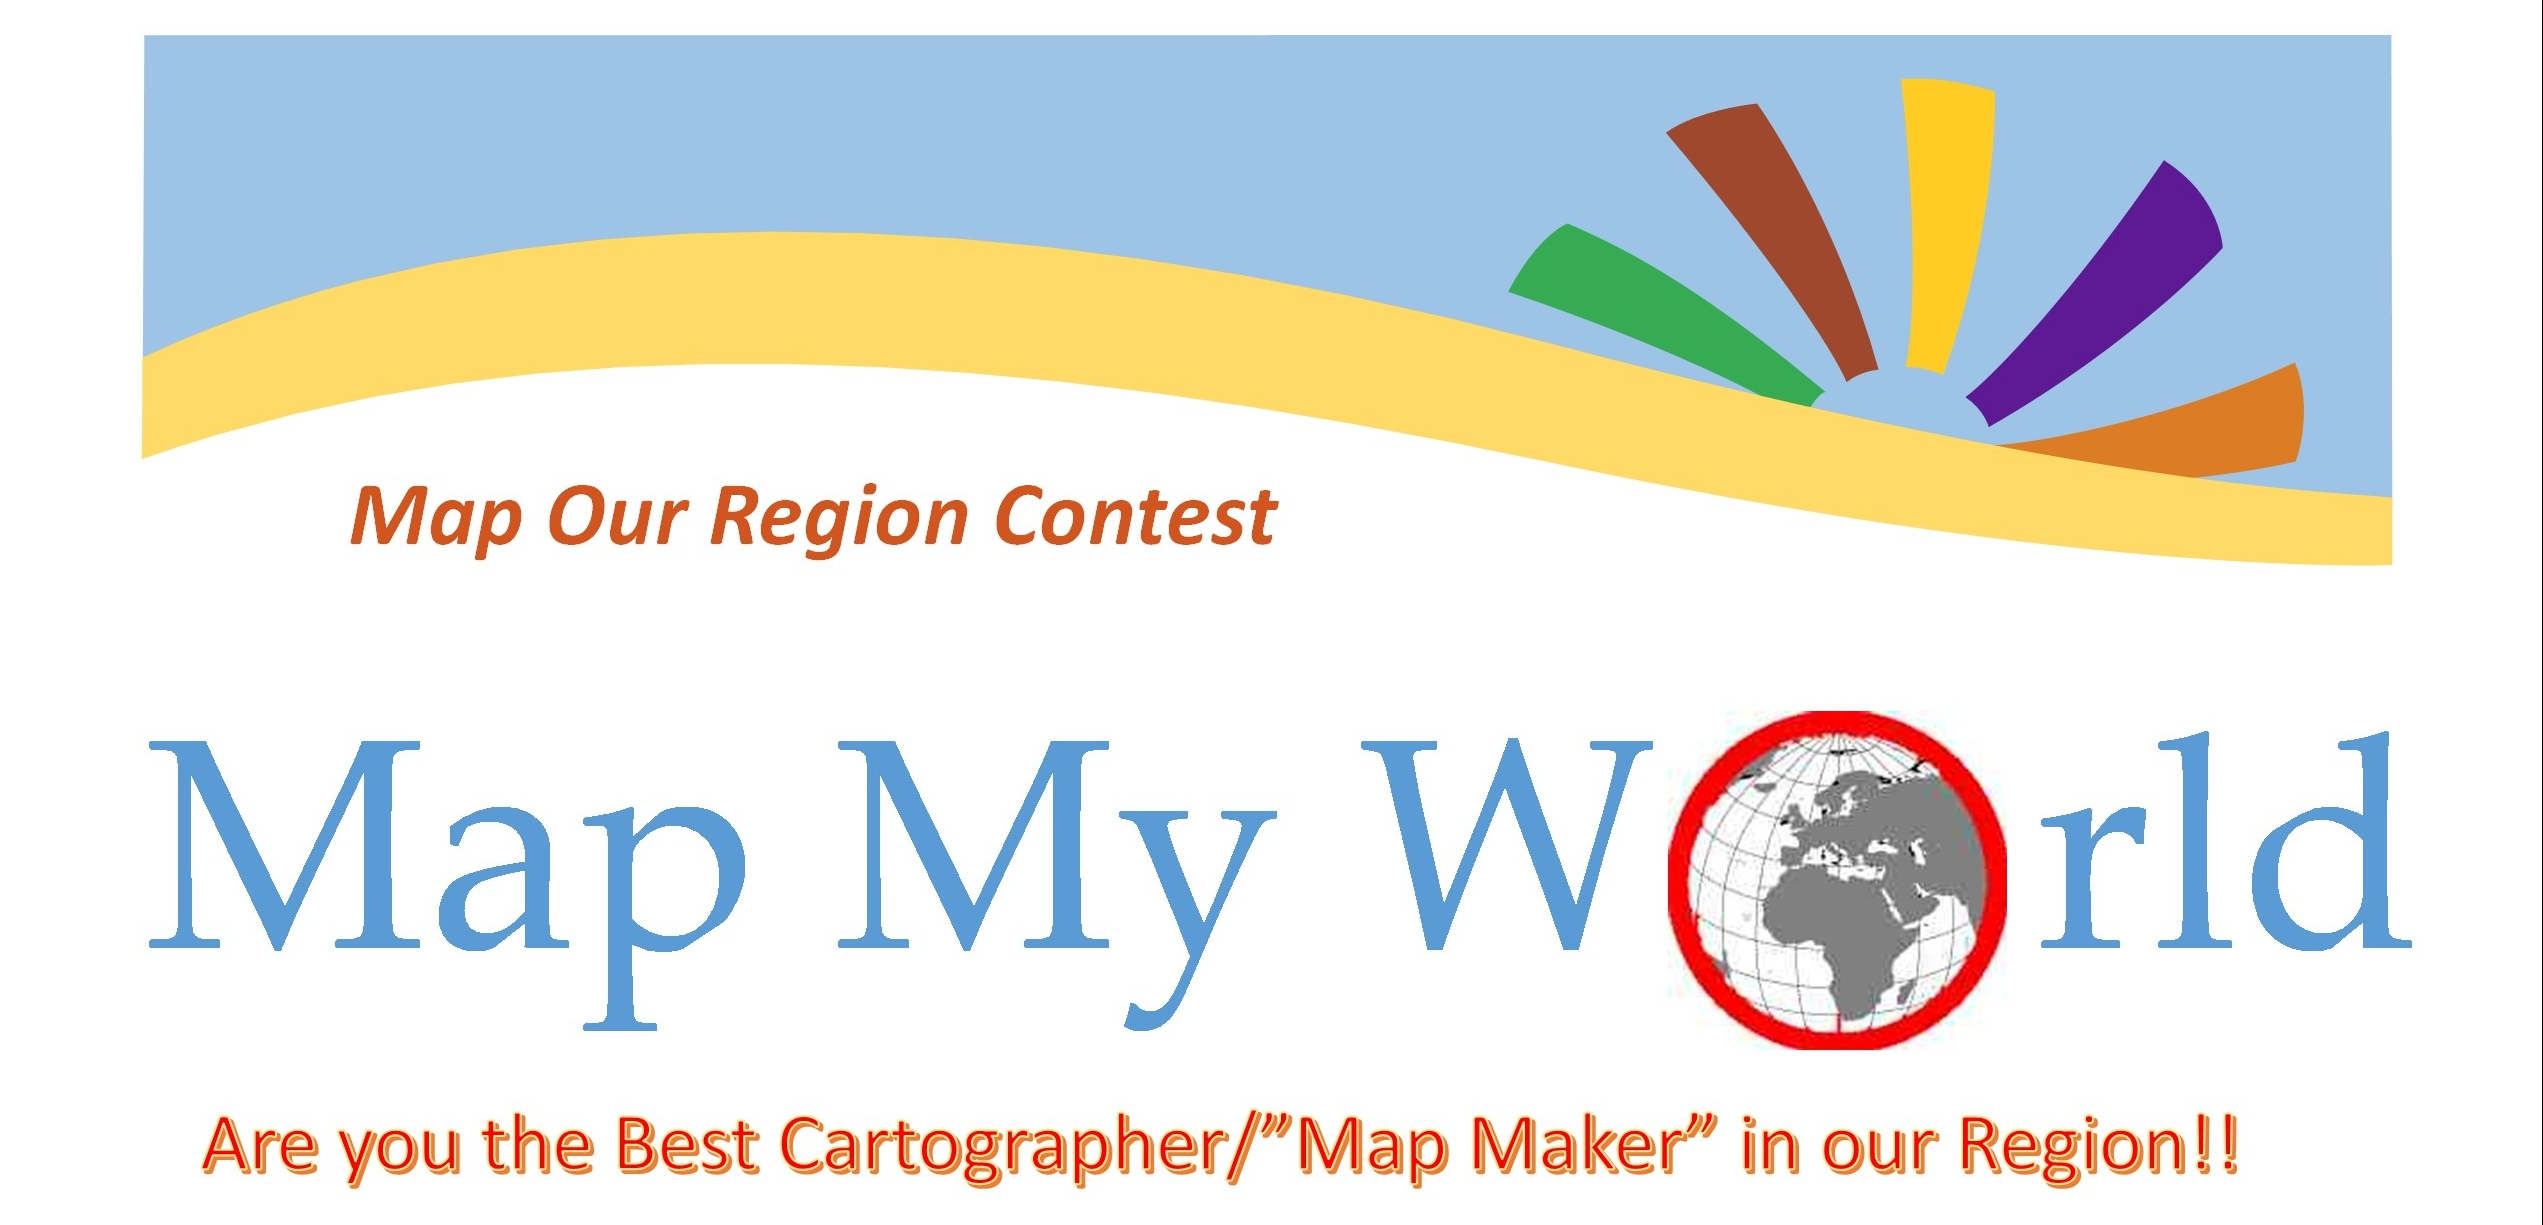 Henry county public library map my world map a thon kentucky i 71 connected is sponsoring the map our region contest to generate real world data on our communities for real world application gumiabroncs Gallery